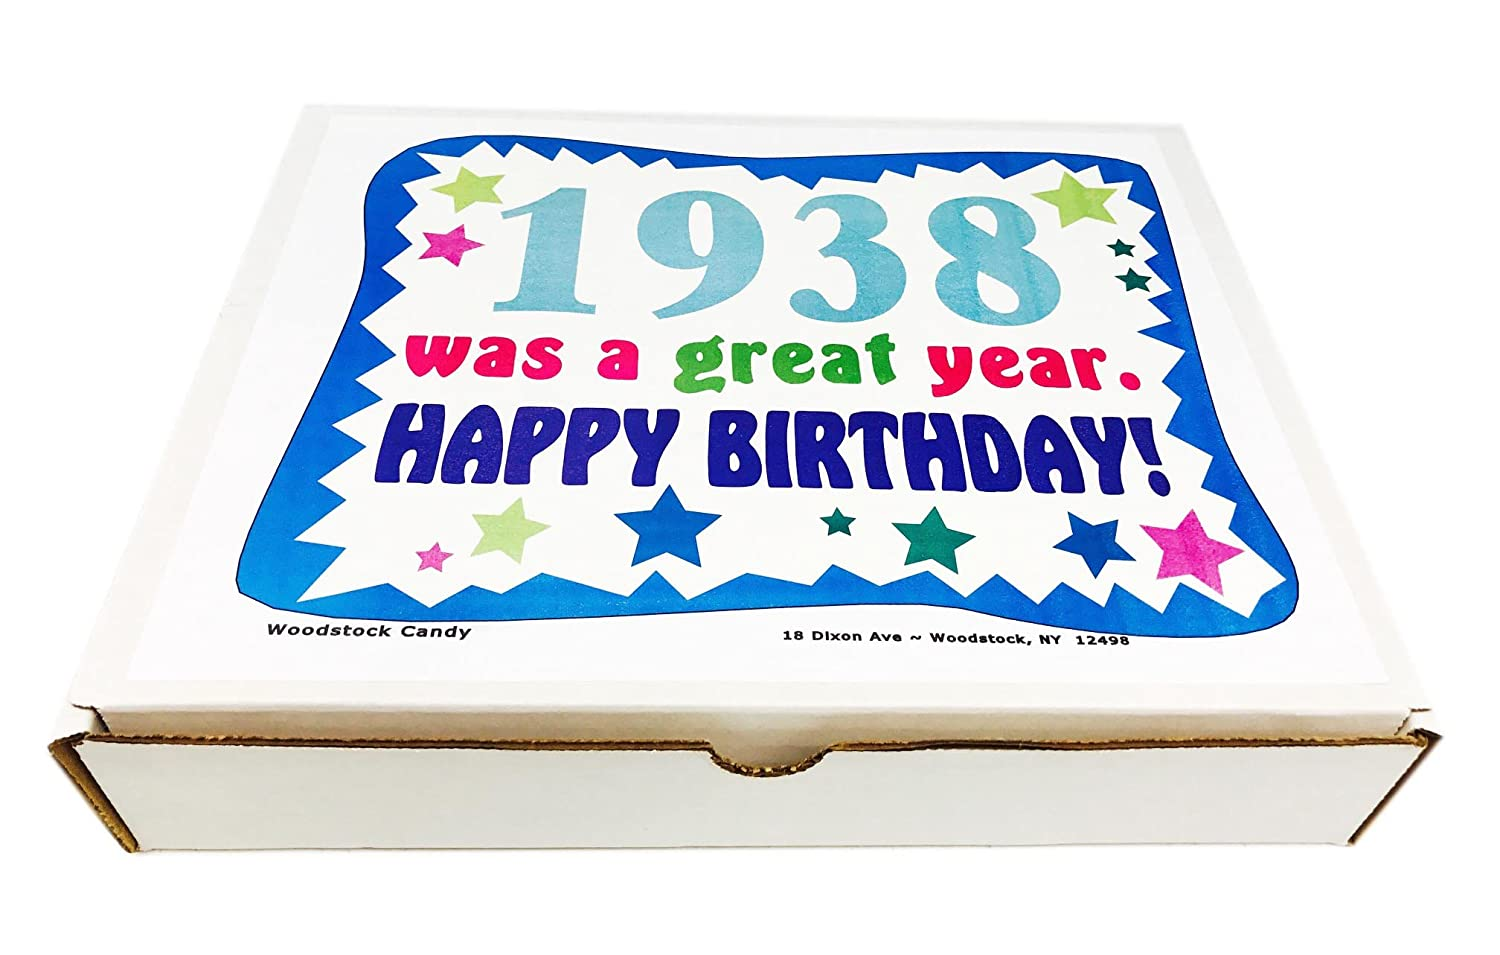 Woodstock Candy ~ 1938 81st Birthday Gift Box Vintage Retro Candy  Assortment from Childhood